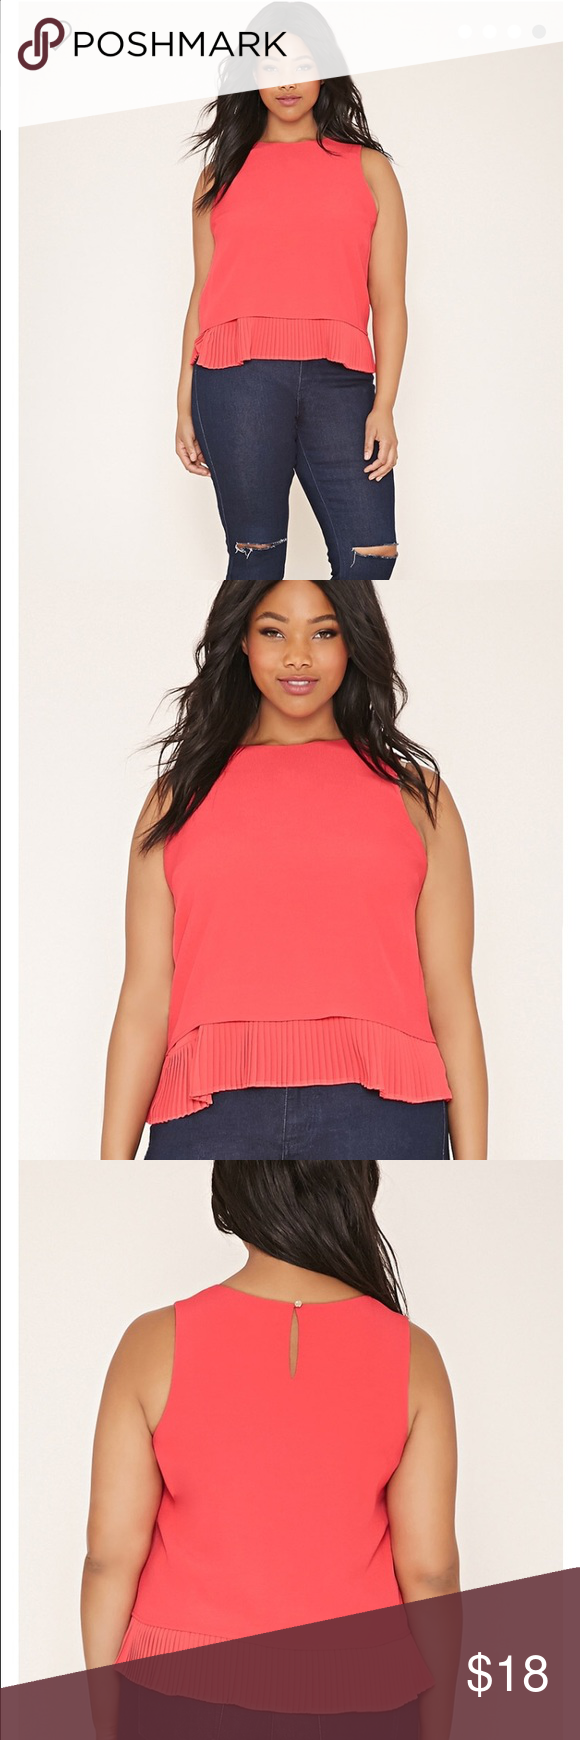 Forever 21 Plus coral top NWT size 1x coral pleated top from f21 plus. No trades, thanks for looking 🤗 Forever 21 Tops Blouses